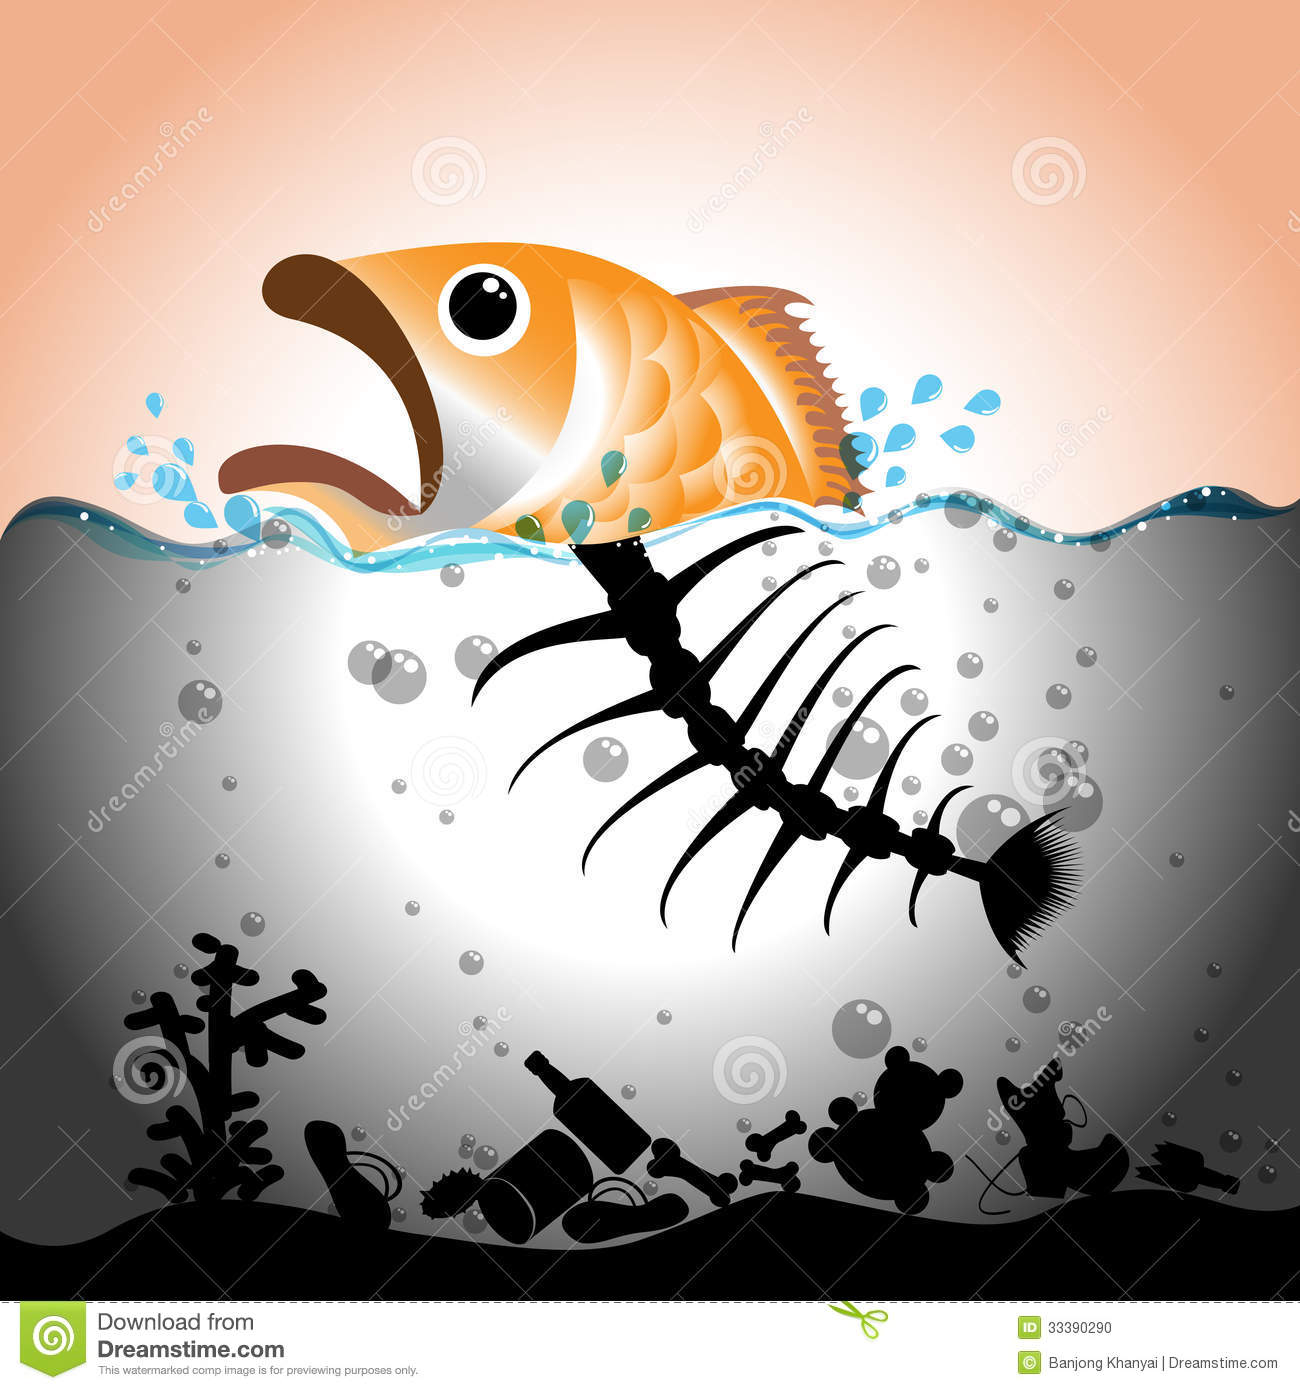 Dirty river water clipart image royalty free download Water Pollution Concept Stock Photo - Image: 33390290 image royalty free download